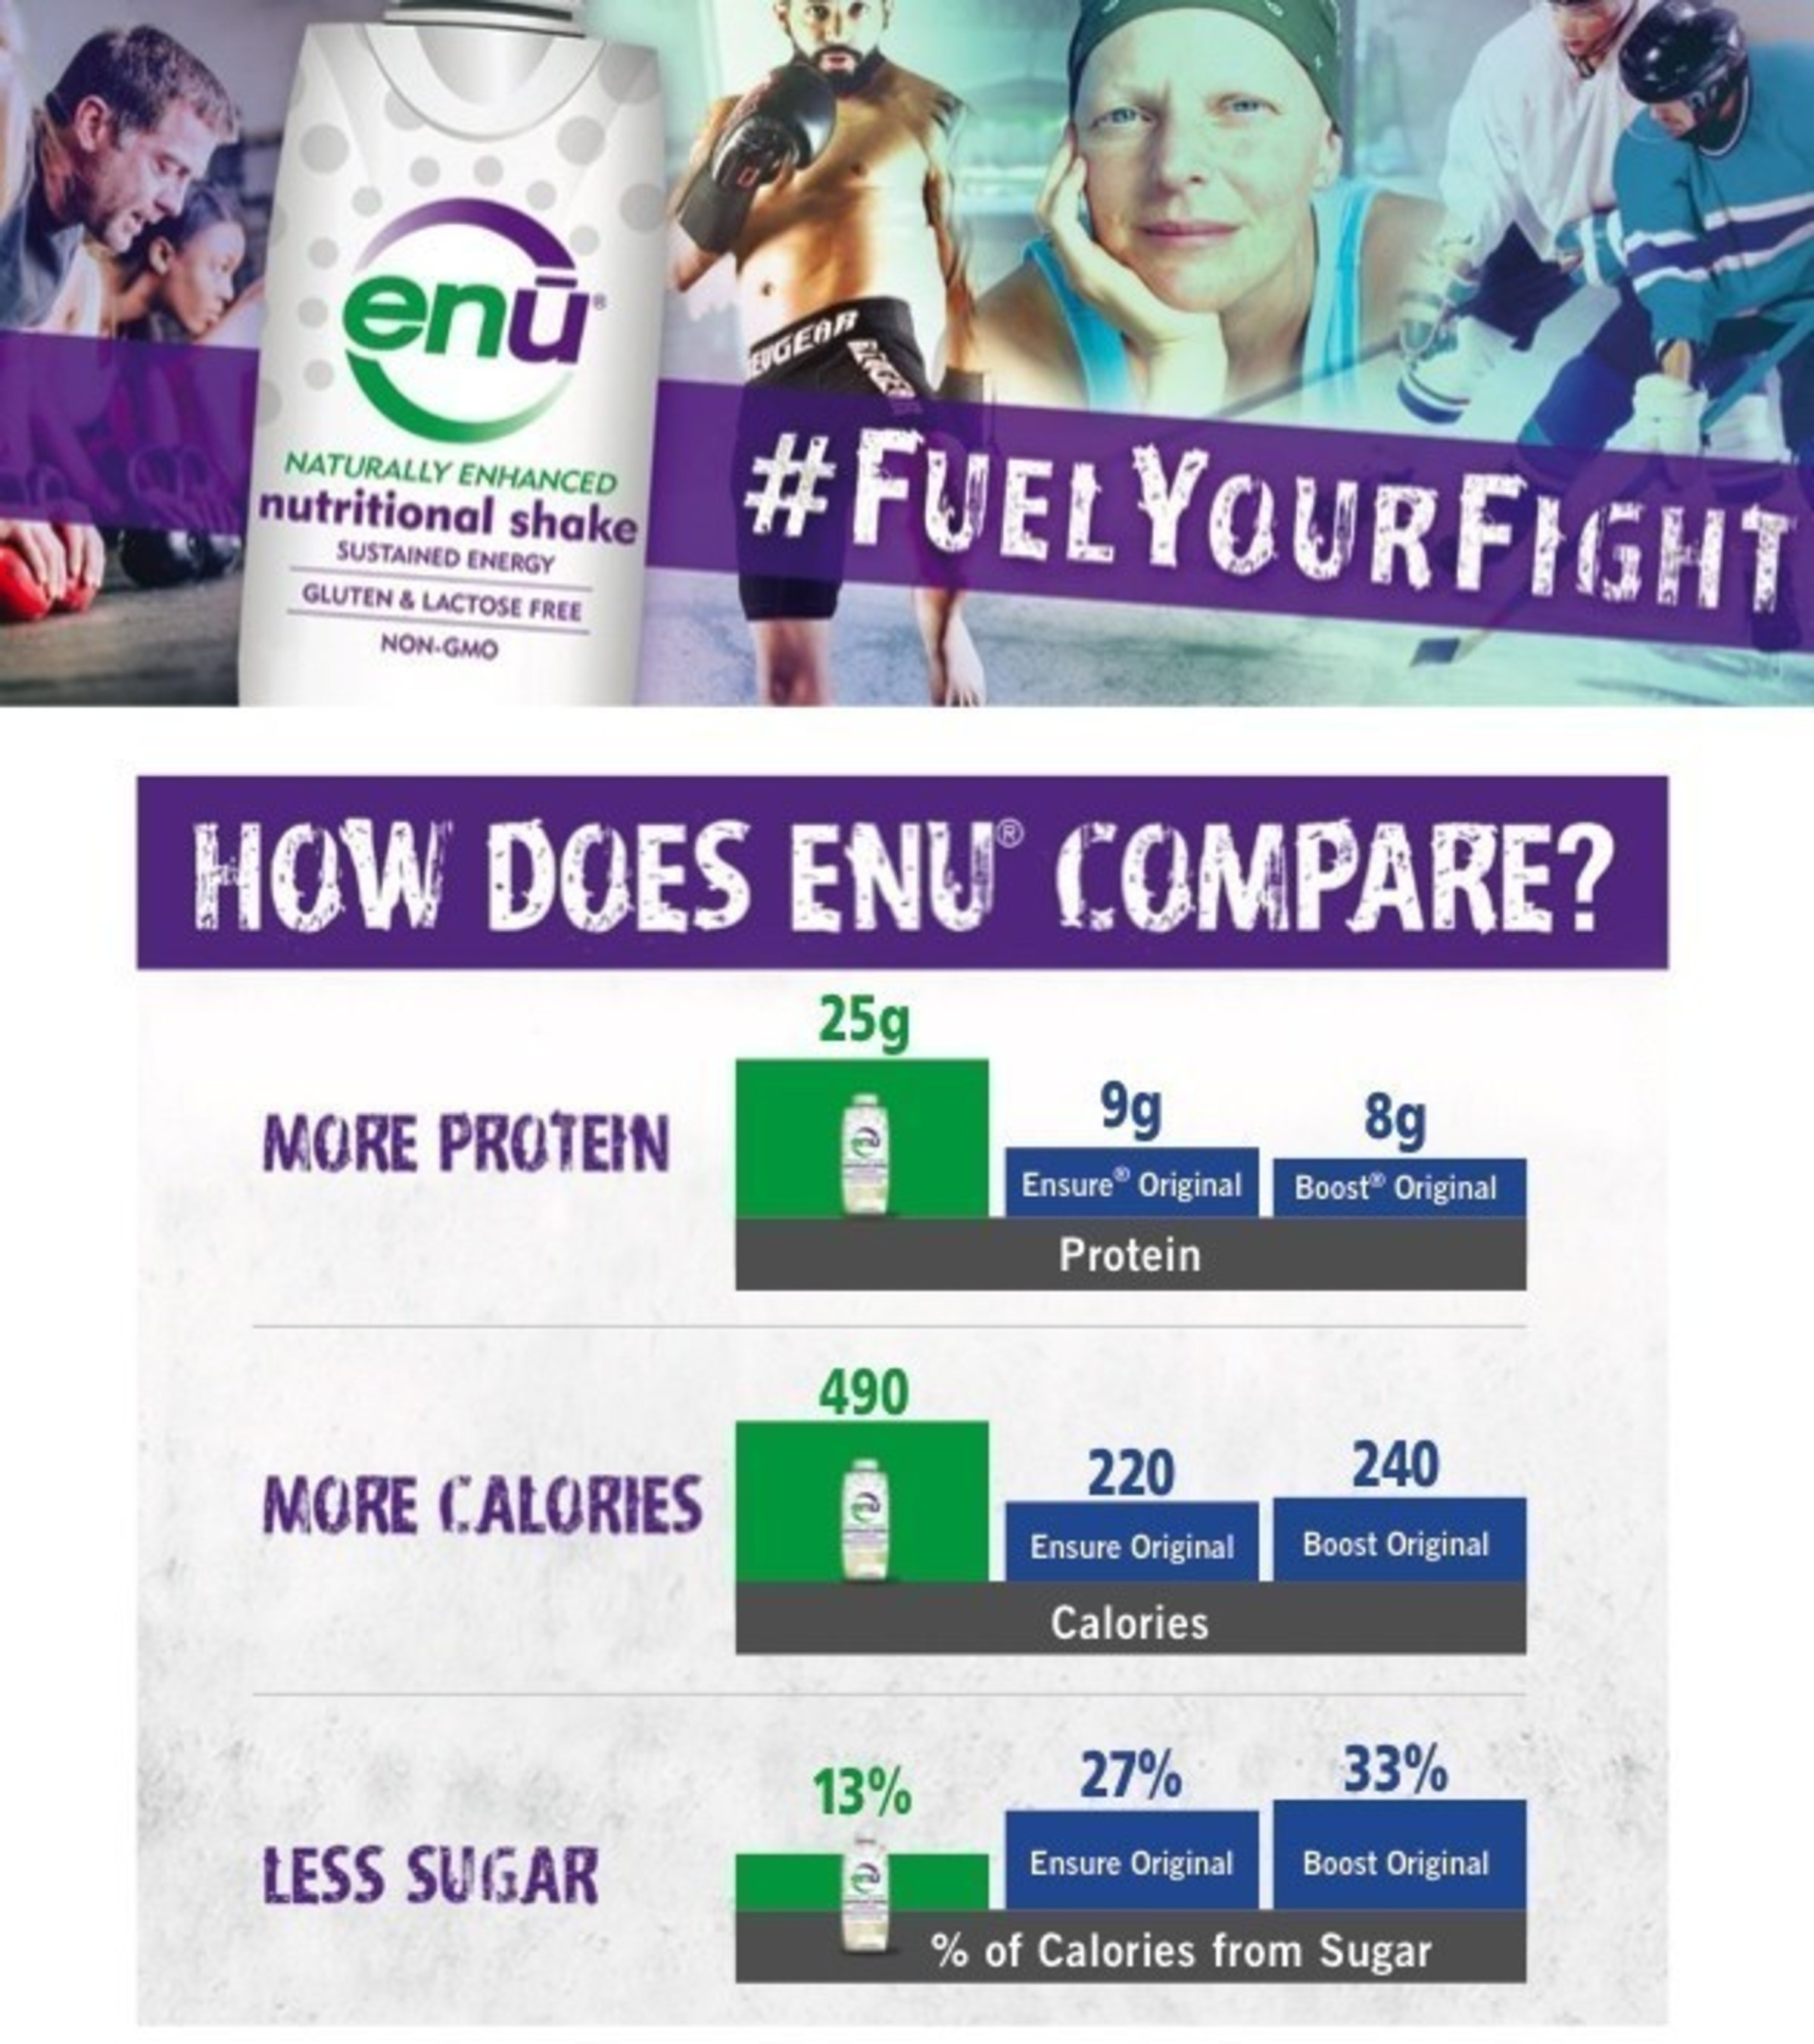 ENU(R) Complete Enteral Nutrition Formula Featured in Leading National Publication, HIV Plus